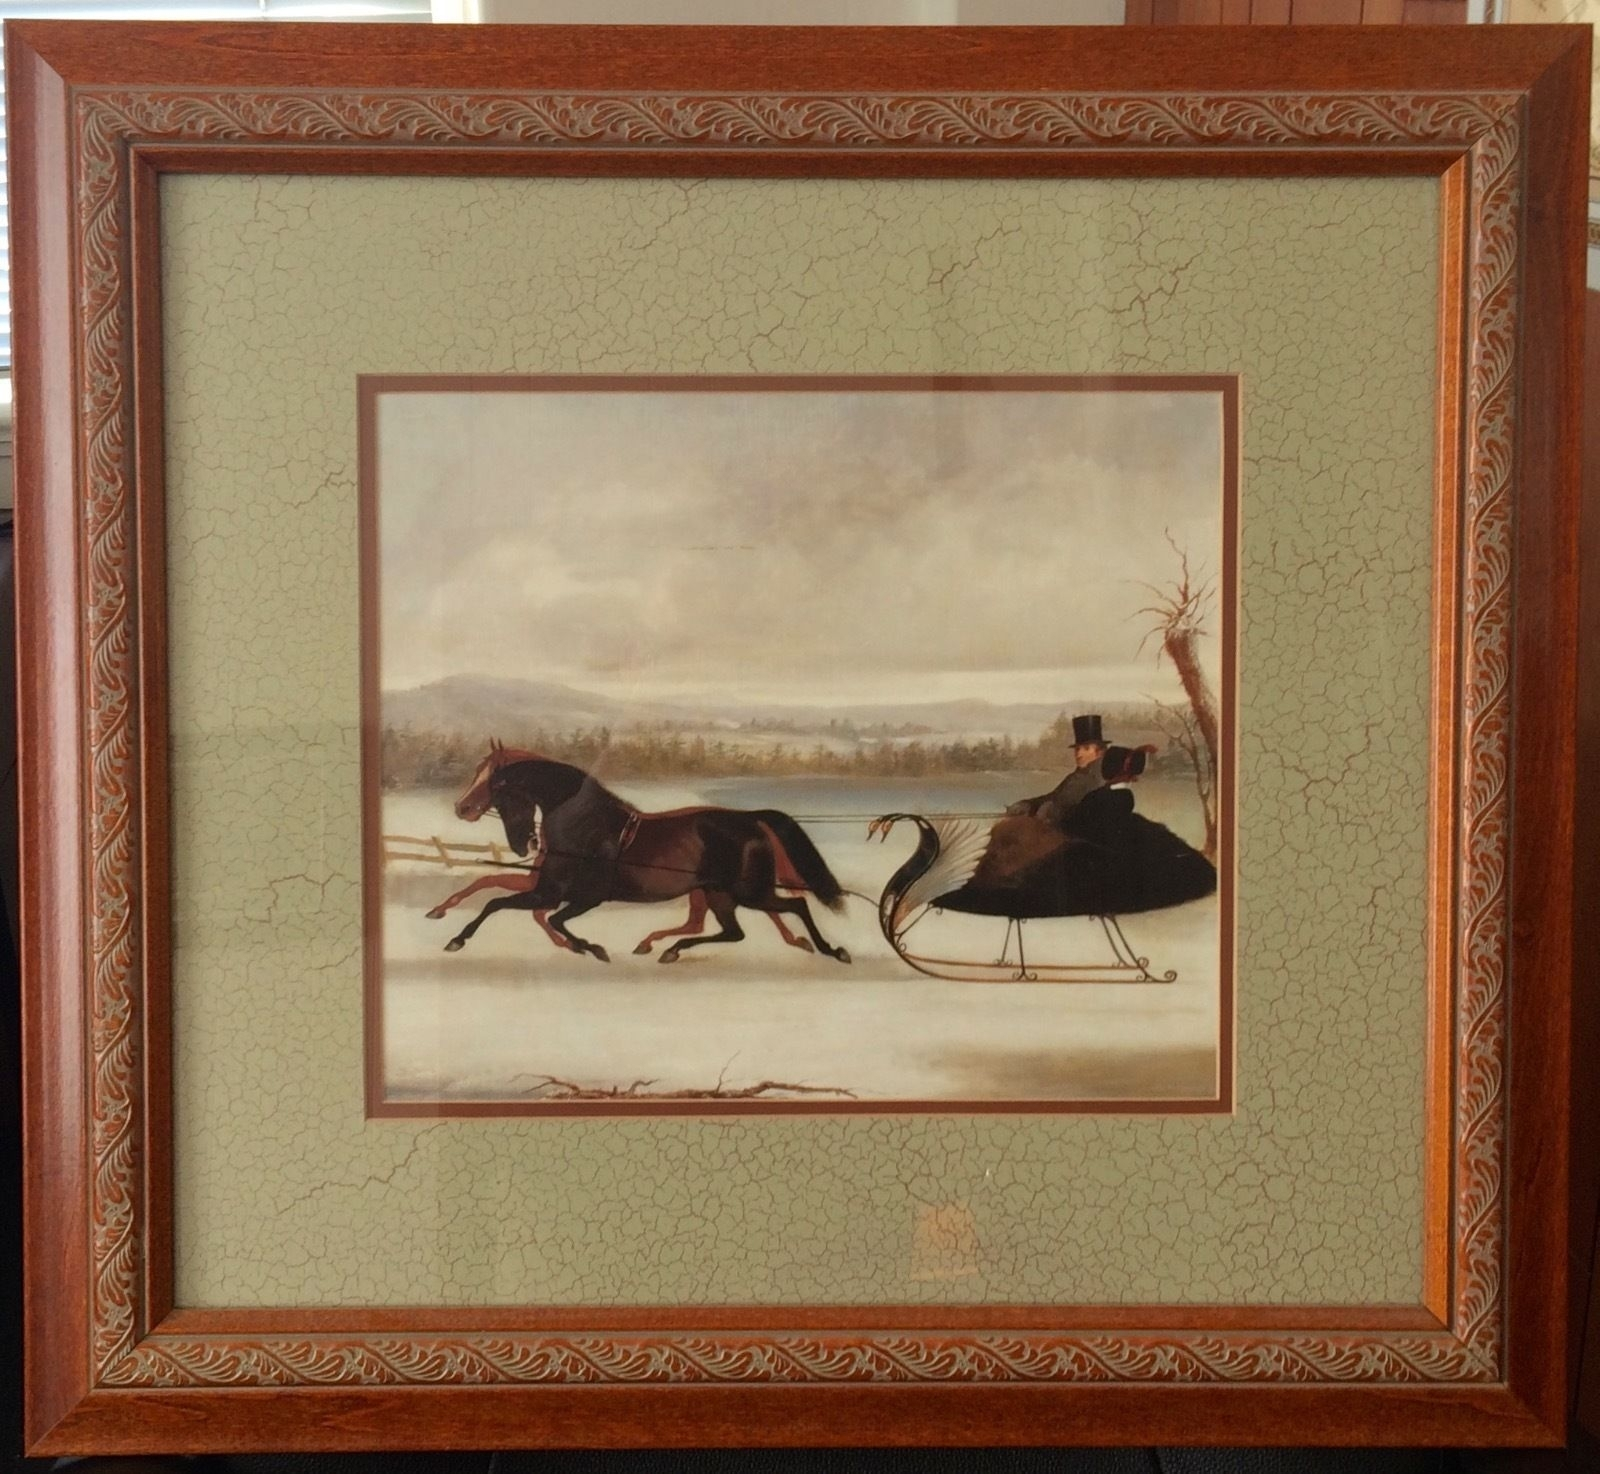 Framed Double Matted Art Print With Horses And Swan Sleigh | Ebay Regarding Recent Framed And Matted Art Prints (Gallery 12 of 15)